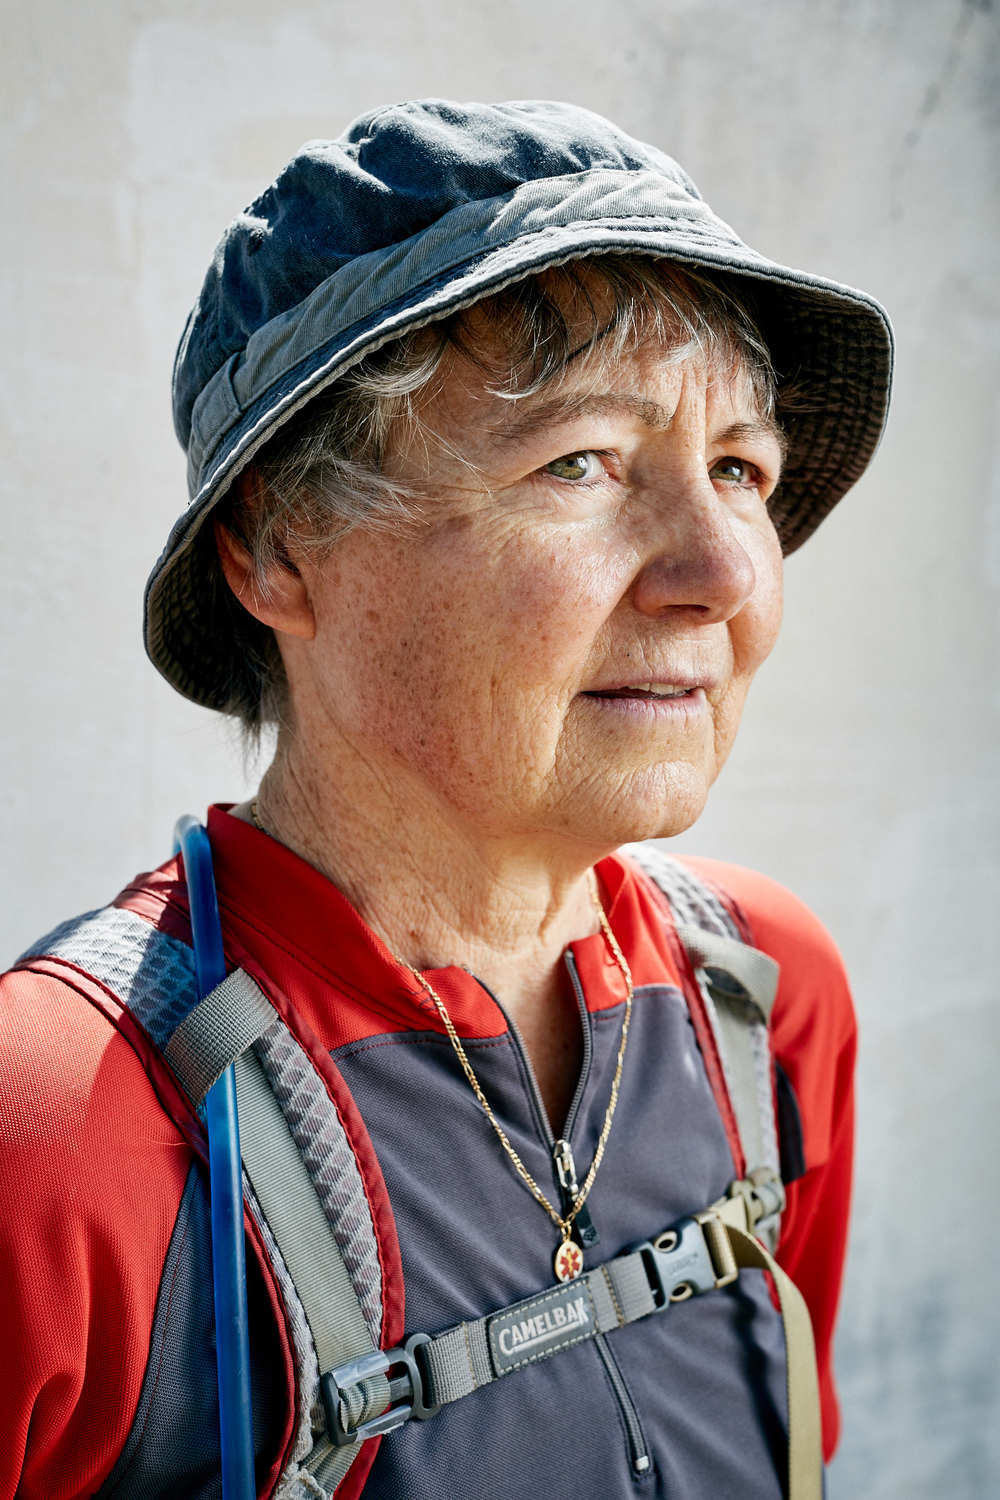 Portraits of Pilgrims on The Camino Way, nr. Leon, Spain.